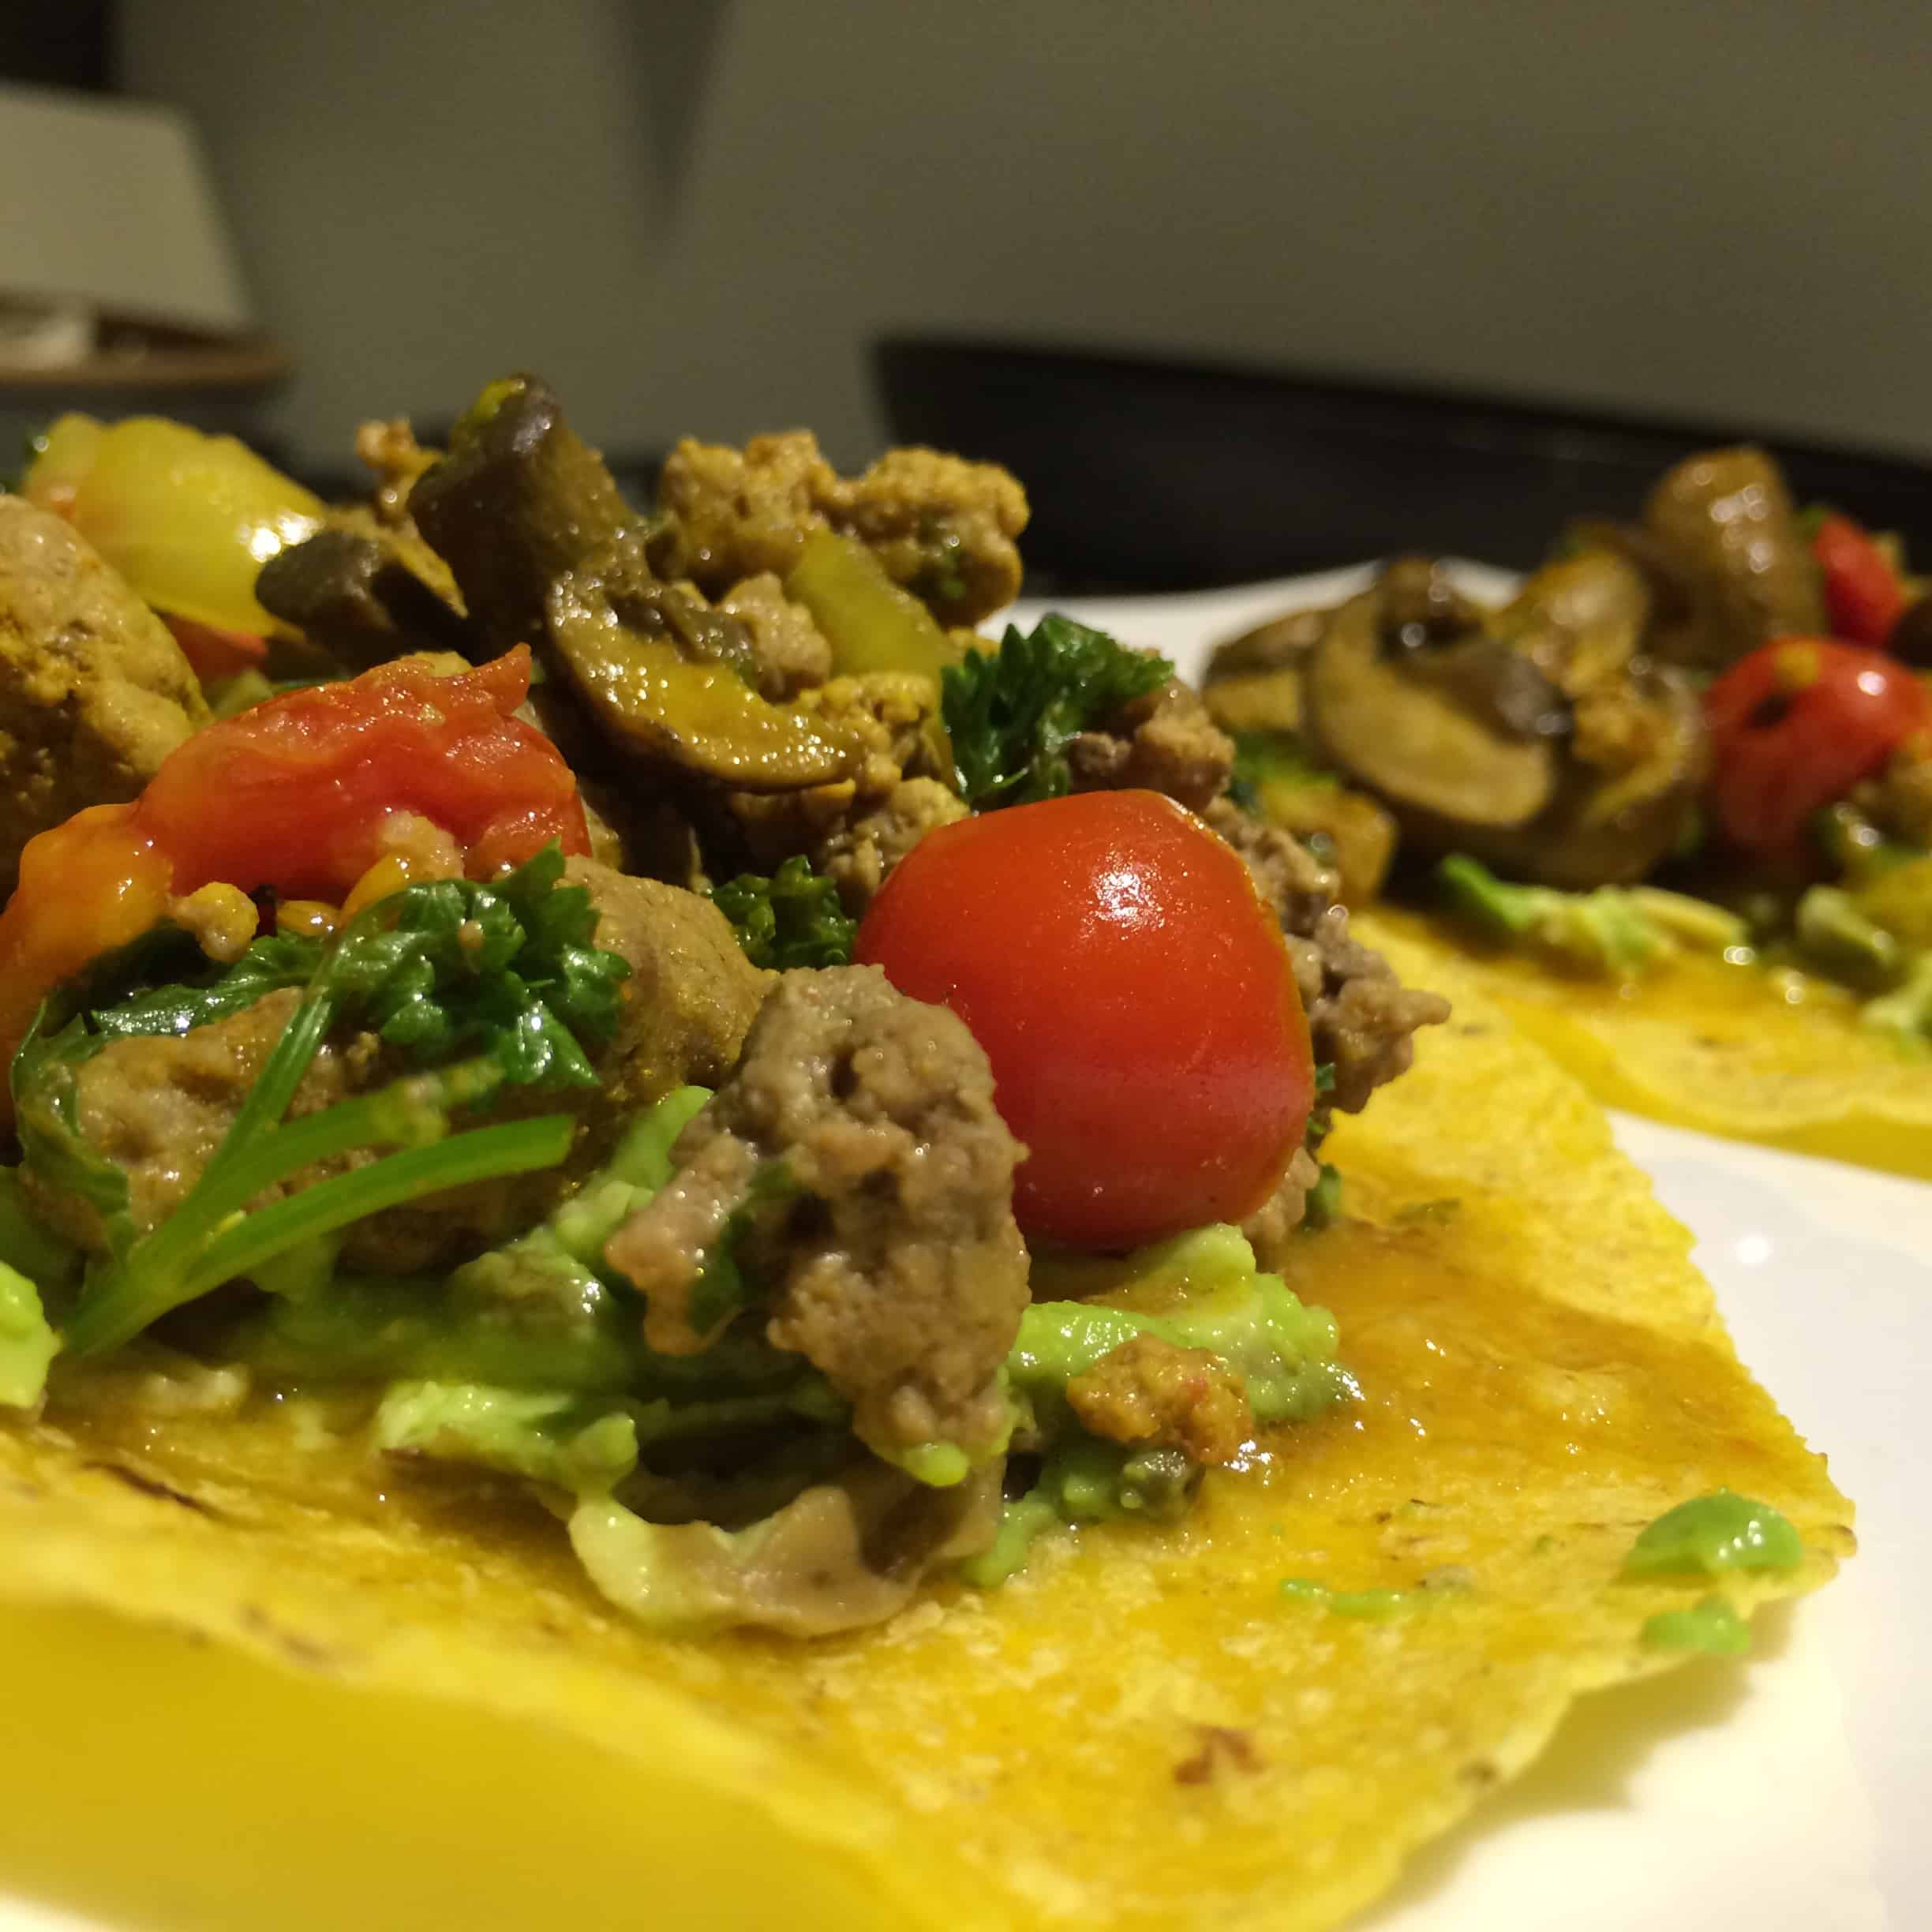 Easy Tostadas Recipe (with video)